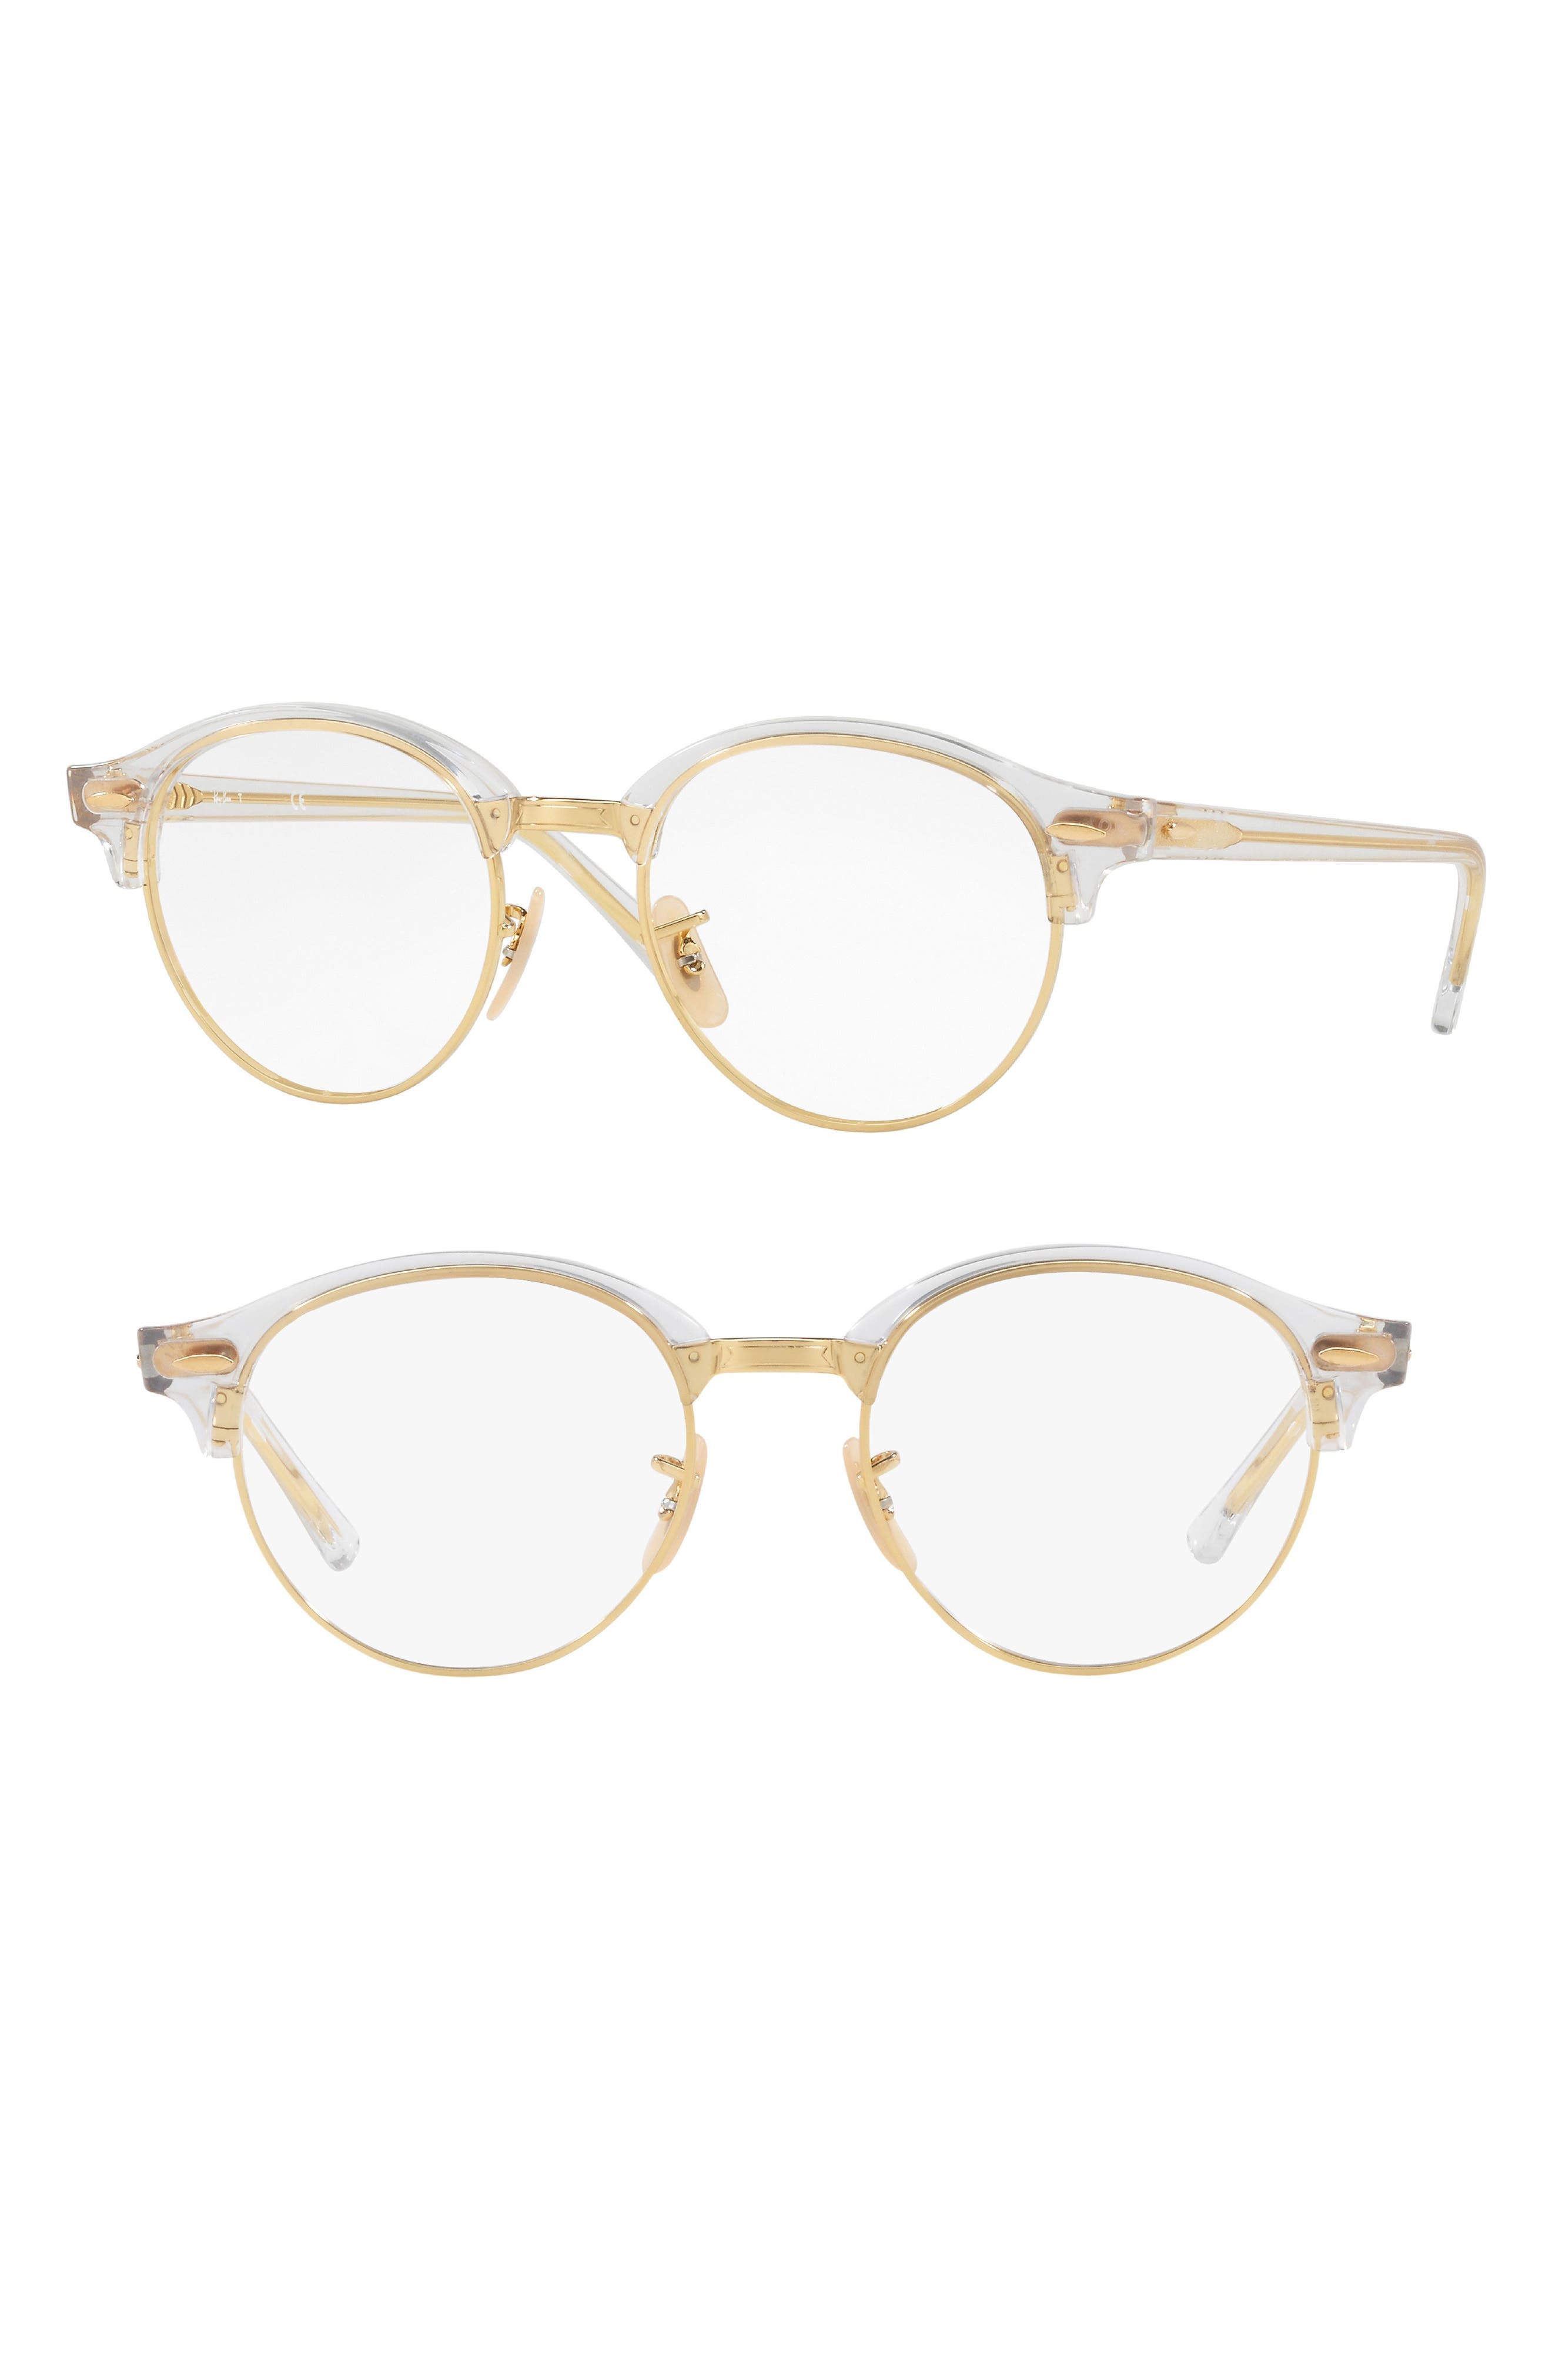 Ray-Ban 47mm Optical Glasses